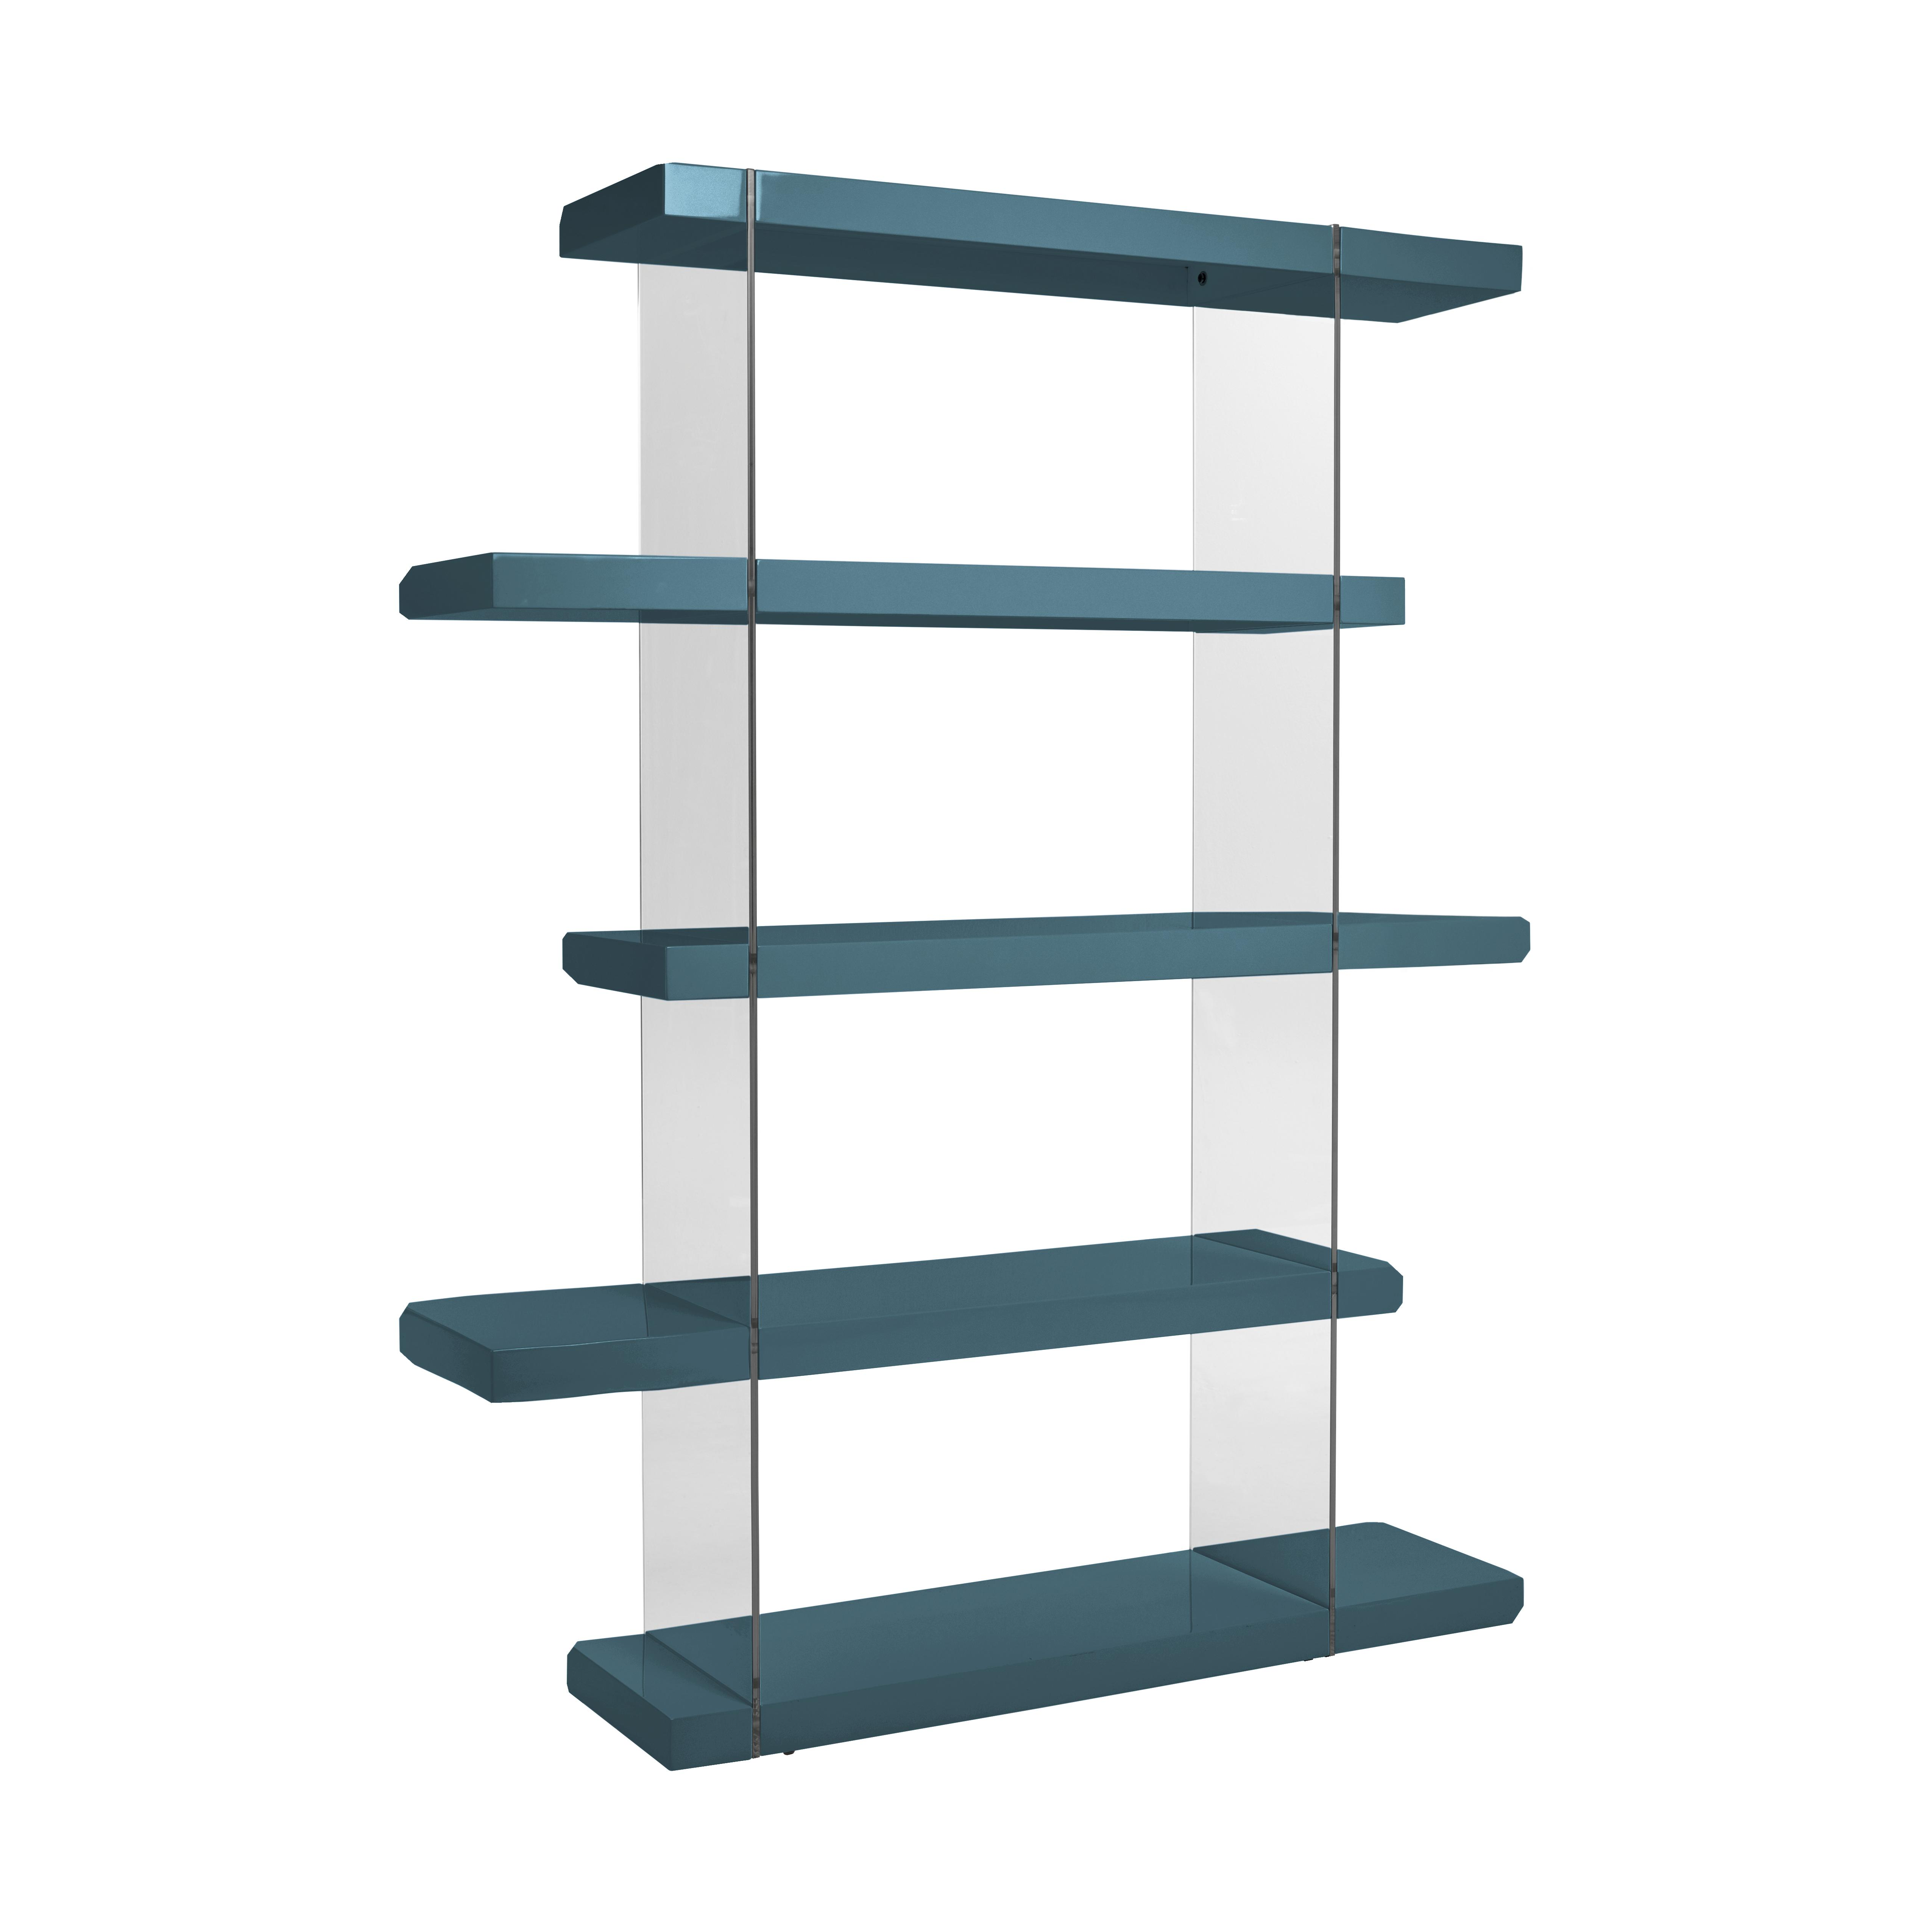 Sturado tall shelving teal gloss